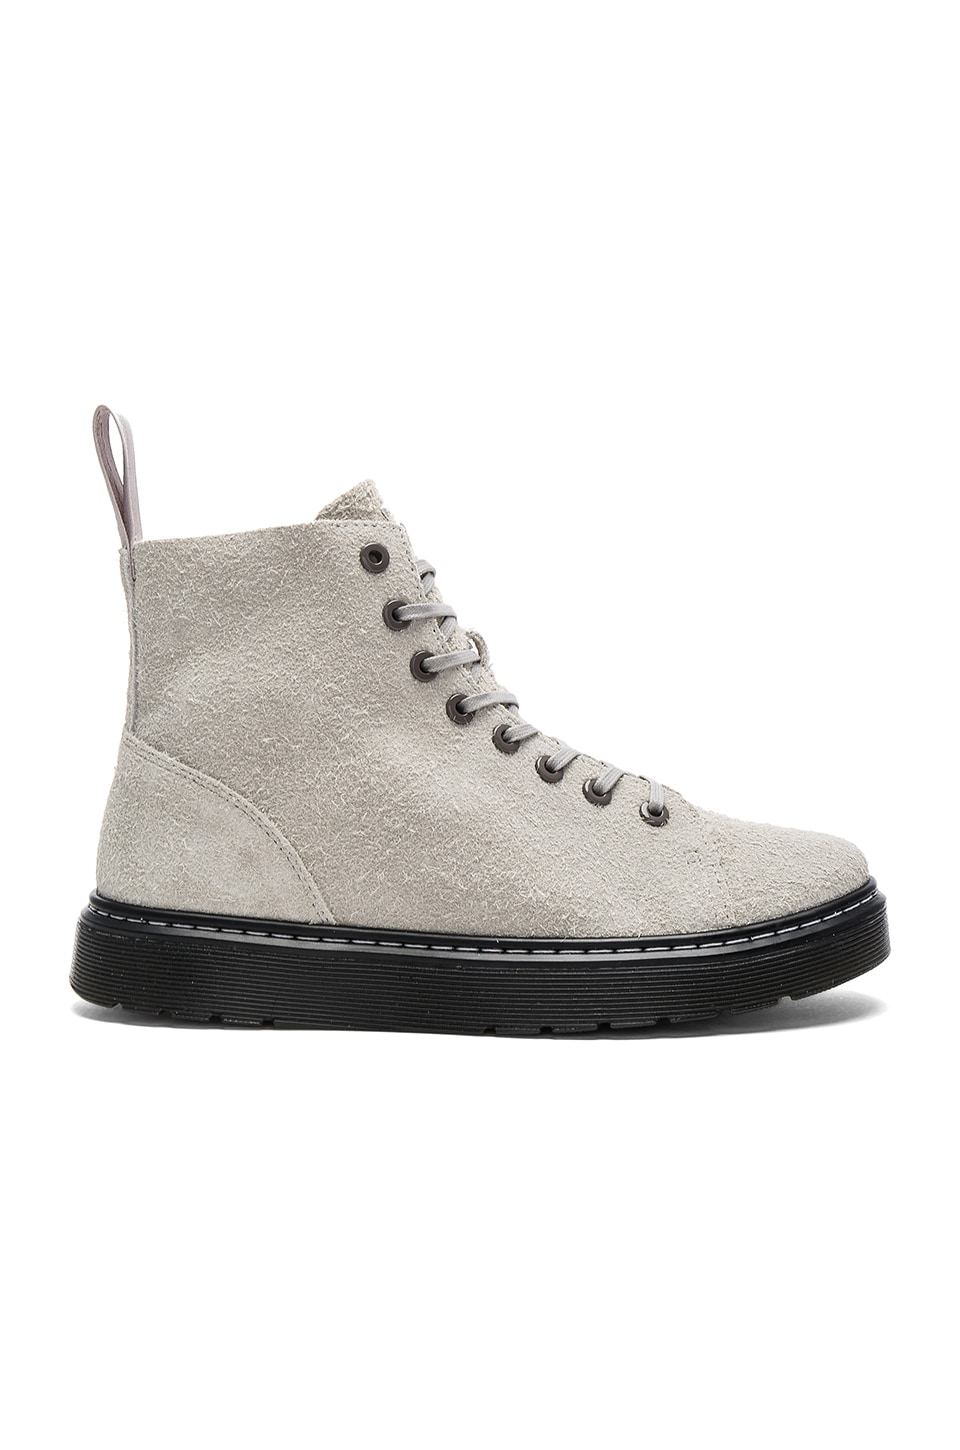 Talib 8 Eye Boot by Dr. Martens